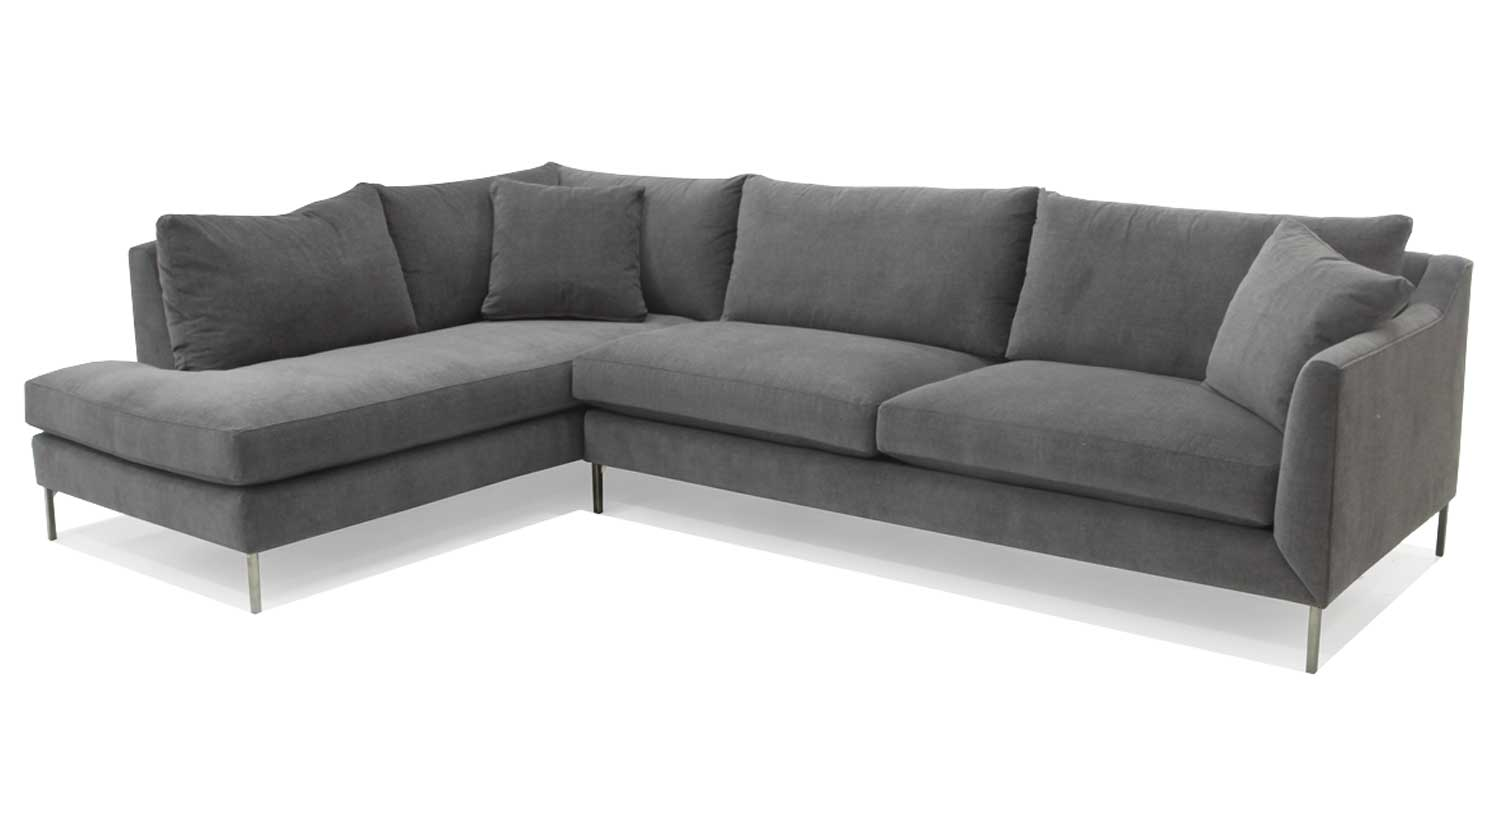 Admirable Circle Furniture Davis Sectional Chaise Sectional Gmtry Best Dining Table And Chair Ideas Images Gmtryco